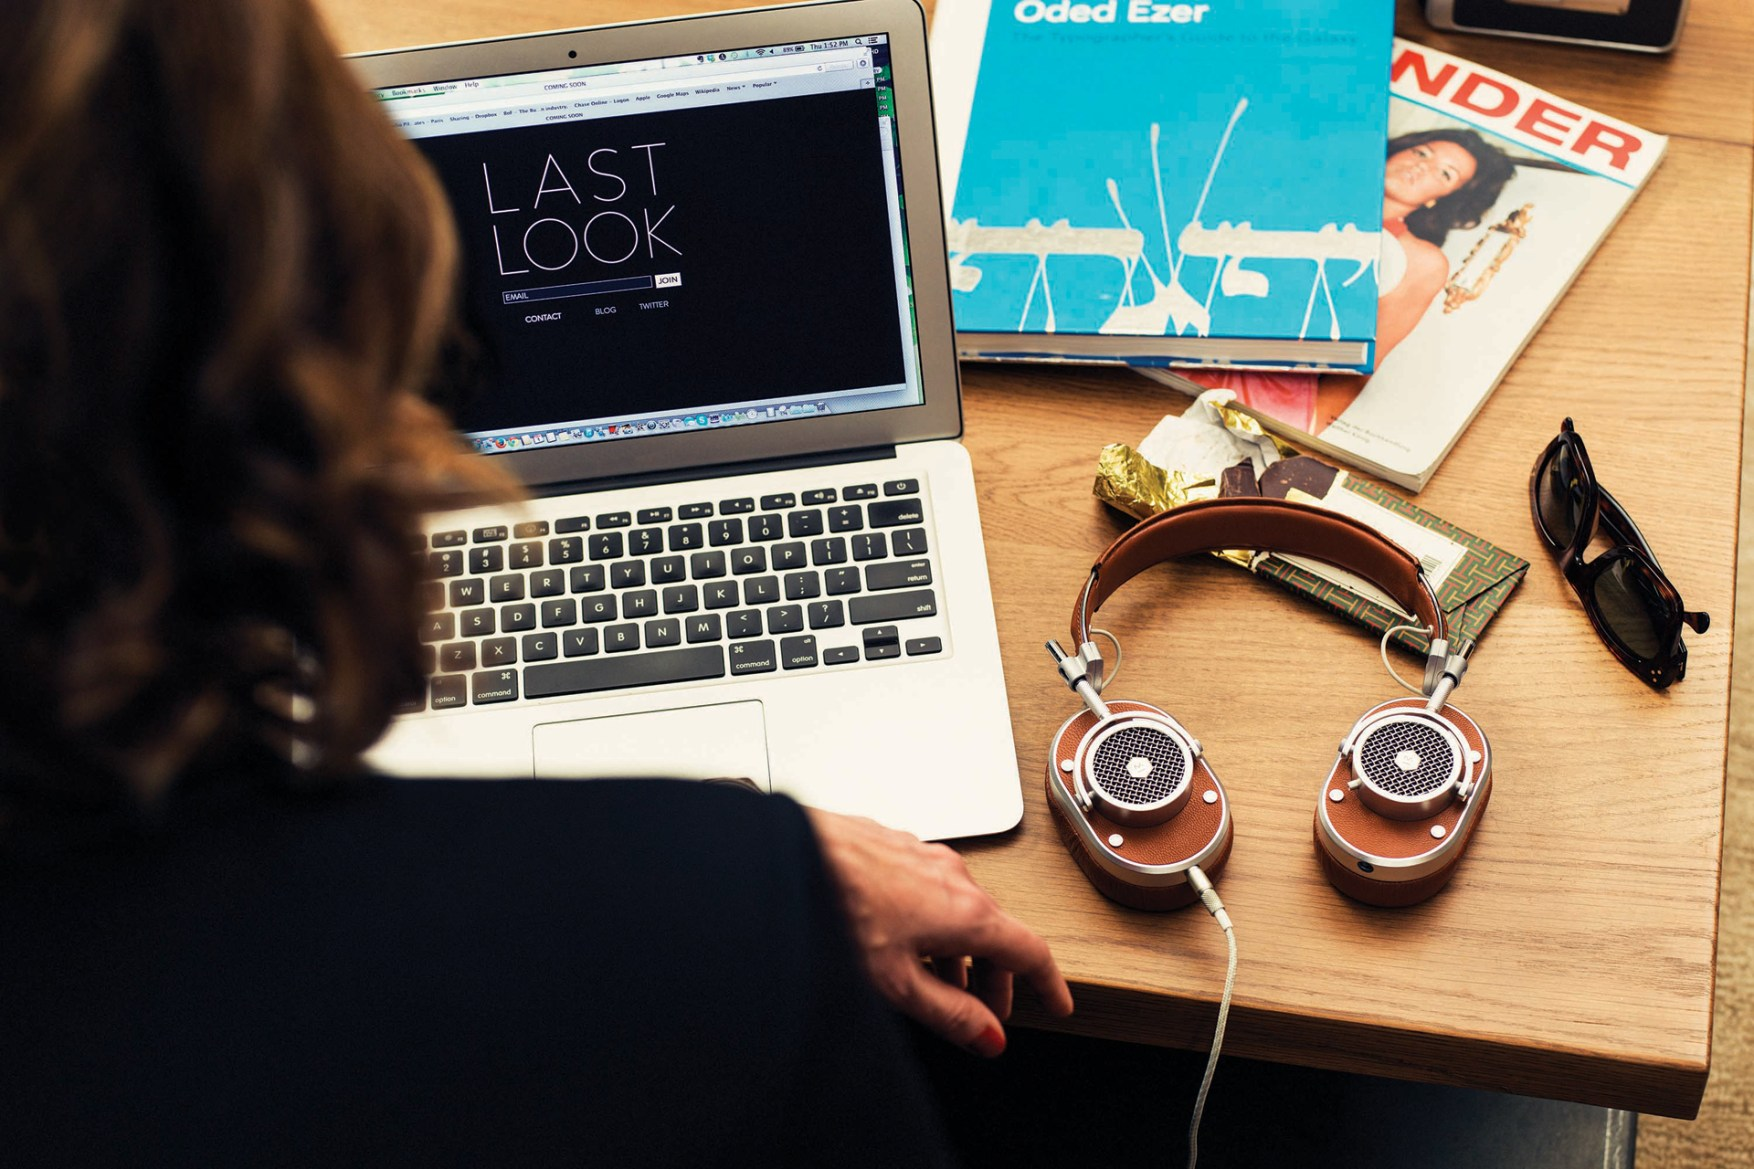 Master & Dynamic: Sound Tools for Creative Minds